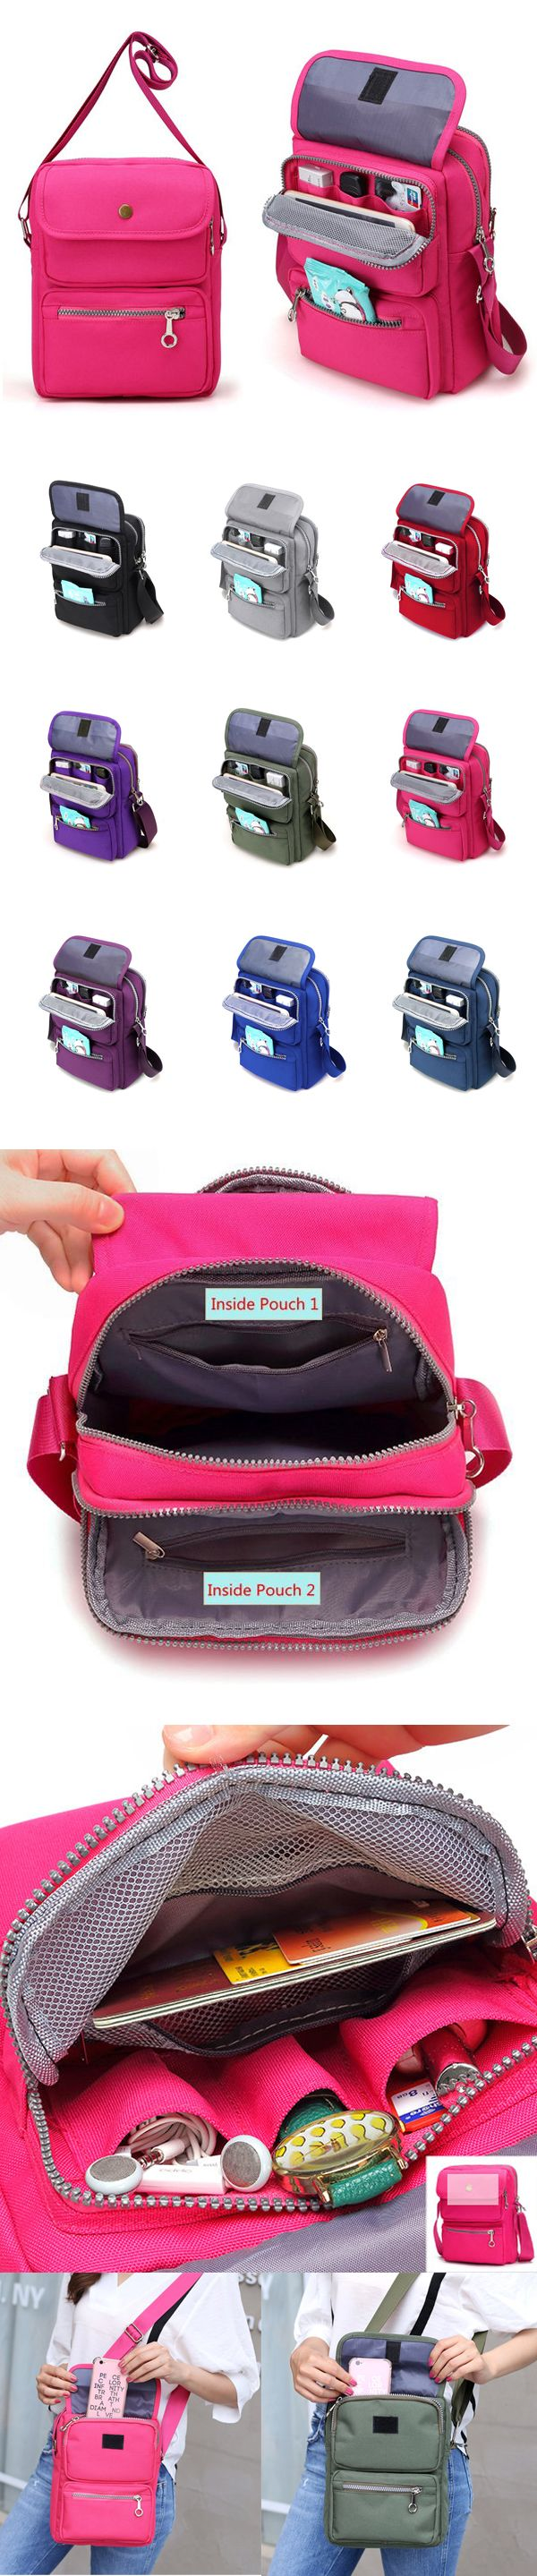 [$ 14.46]    Women Nylon Travel Passport Bag Crossbody Travel Bag Useful Shoulder Bag